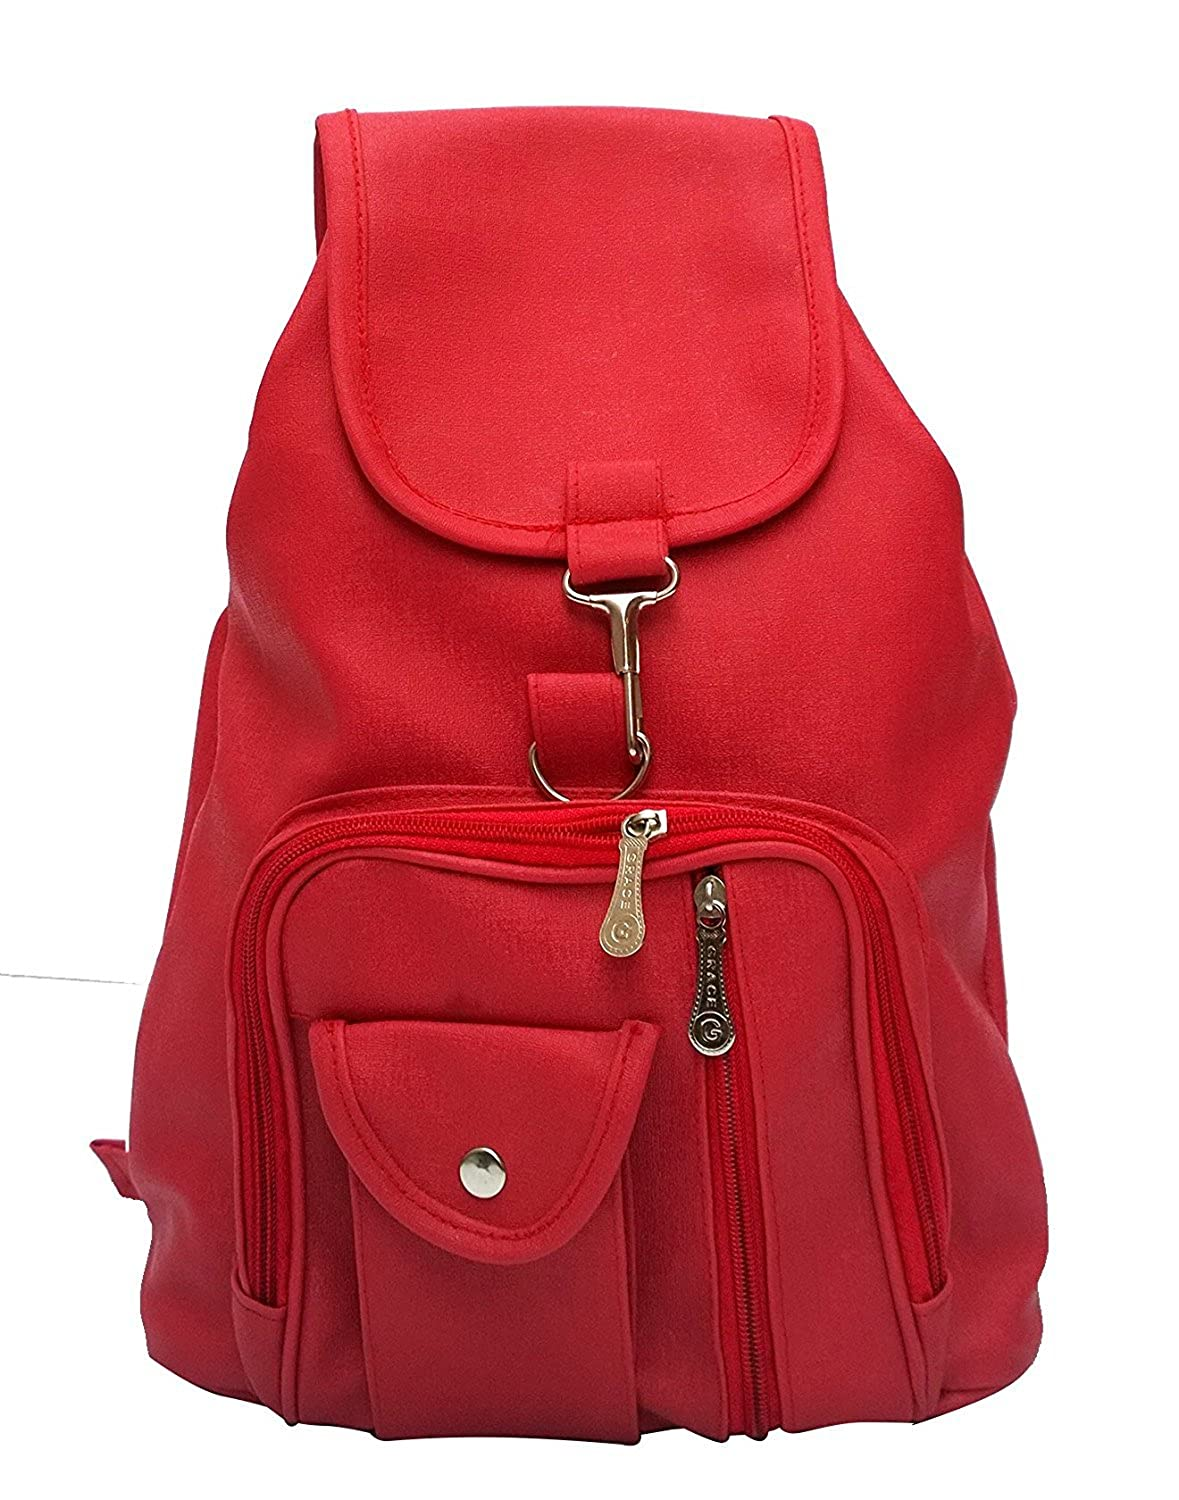 Stylish fastrack college bags 2019